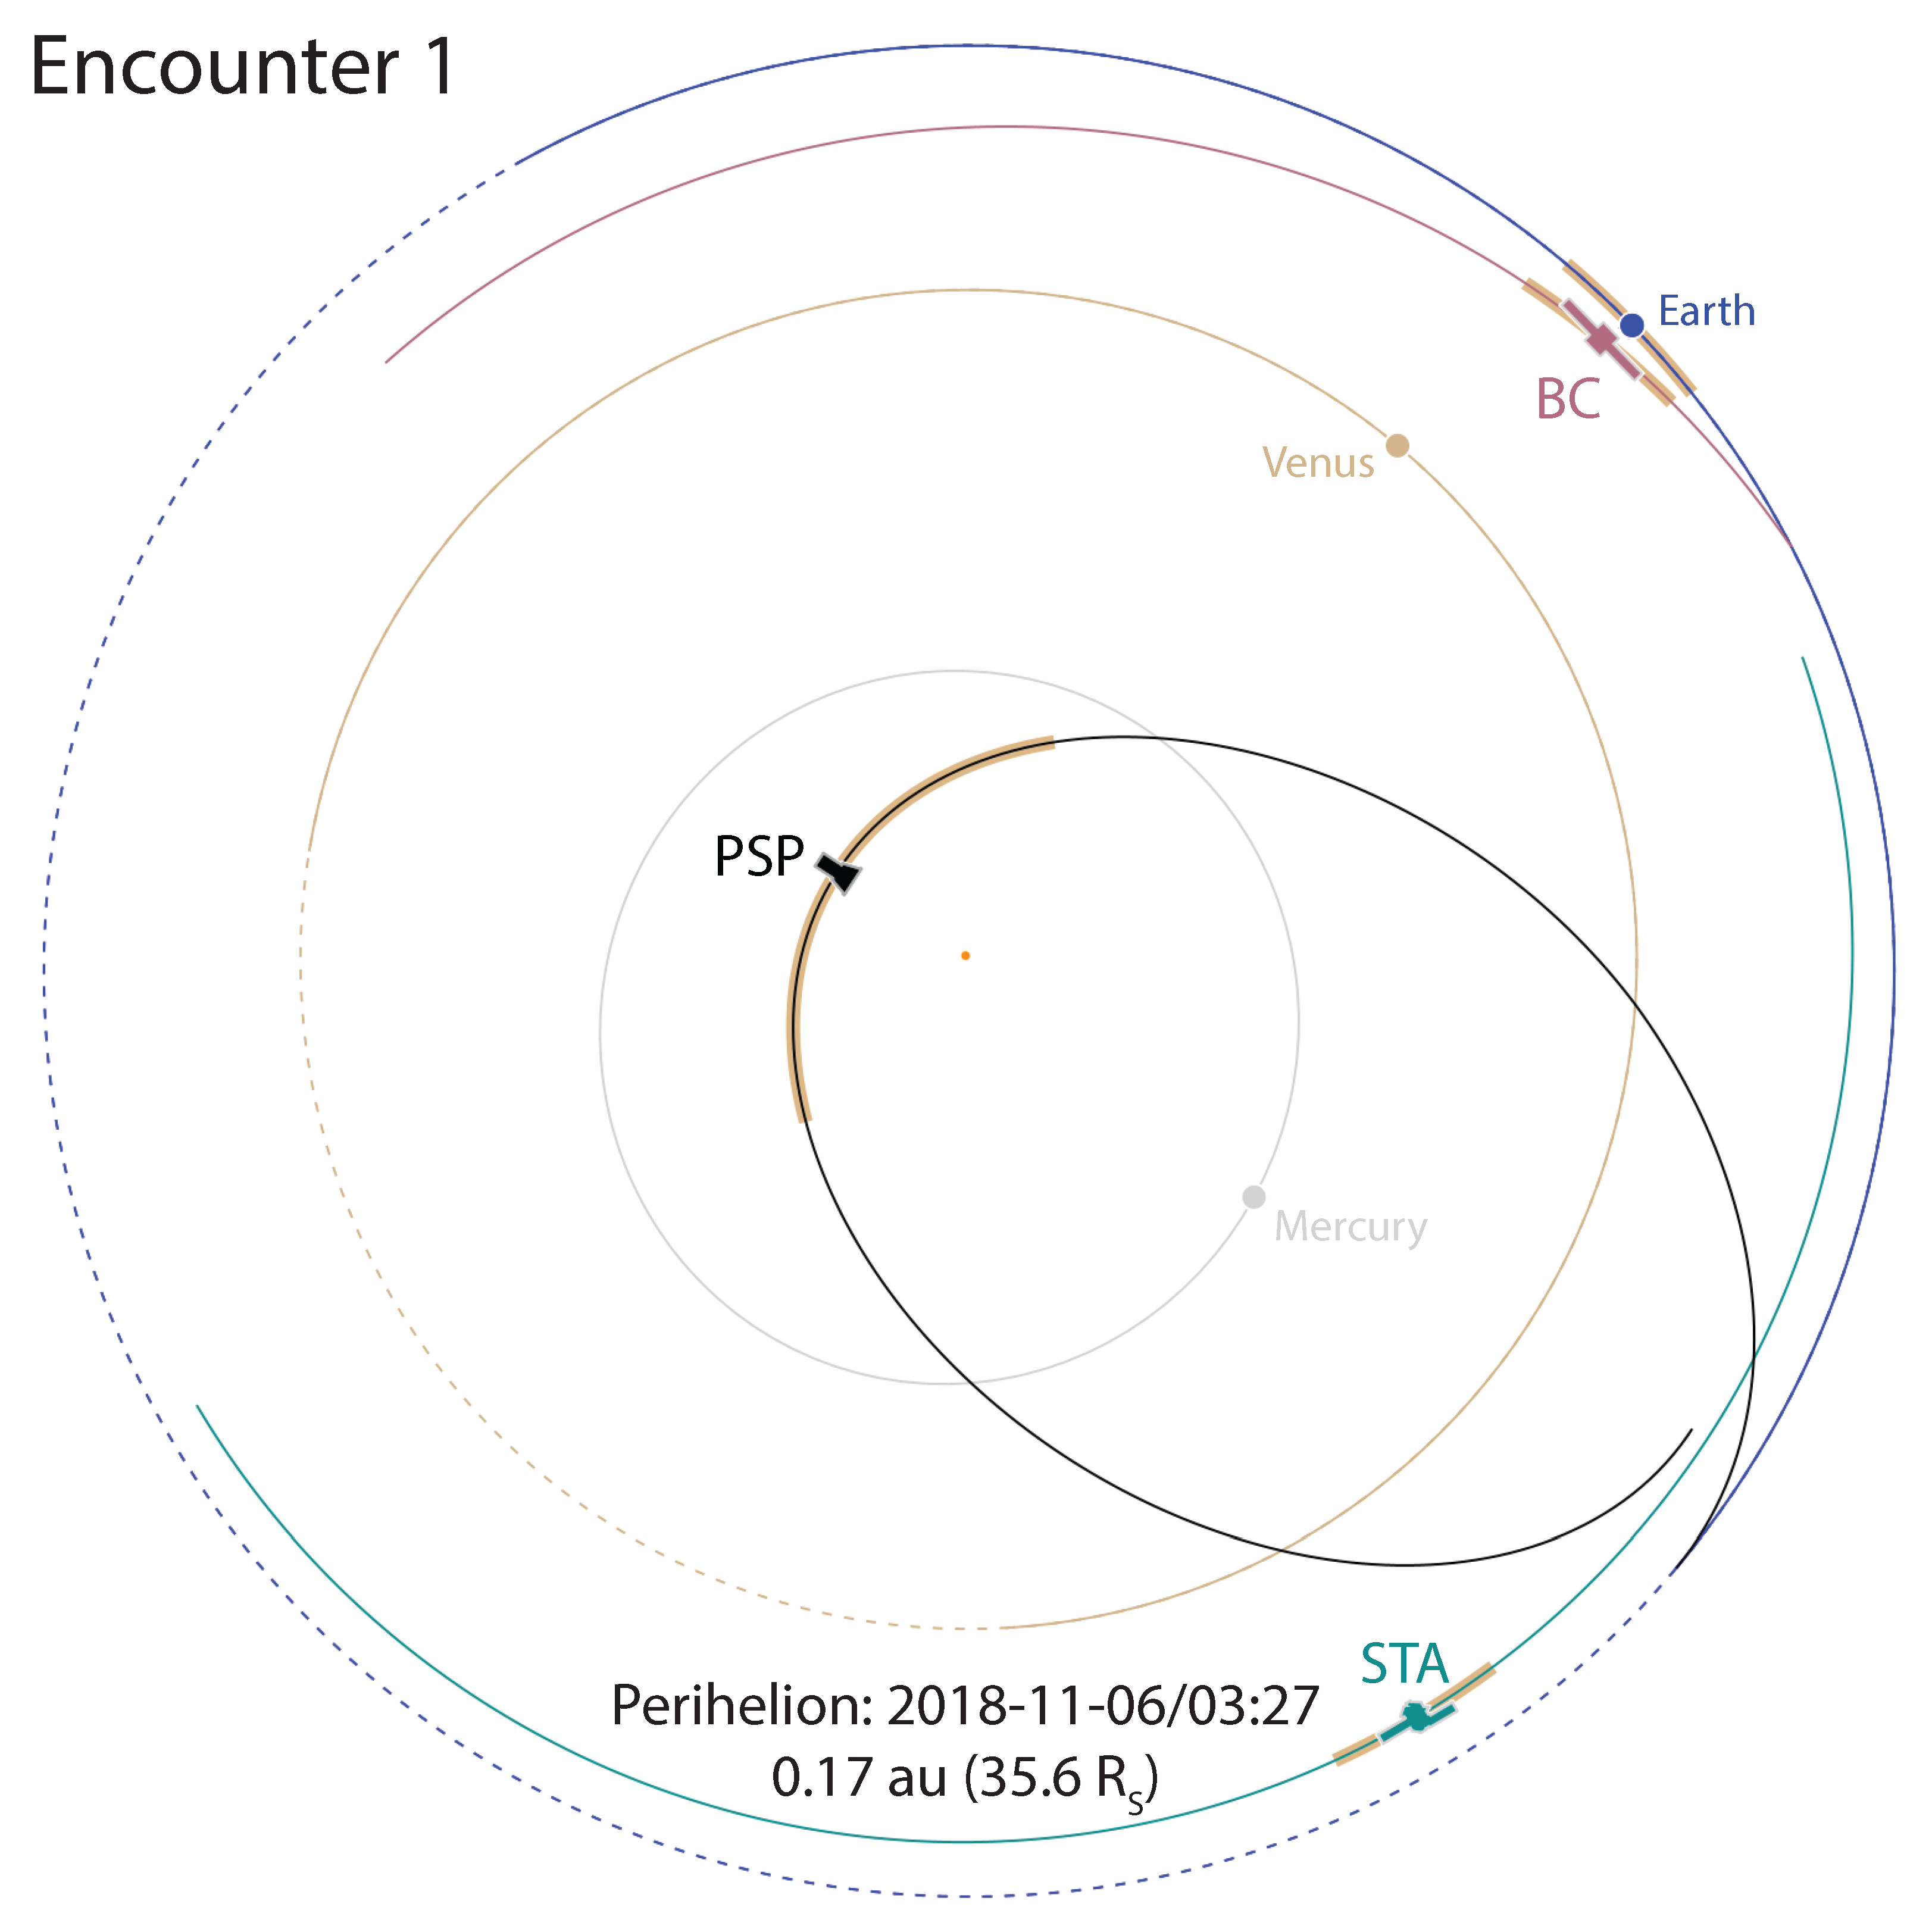 PSP Orbit for Encounter 1